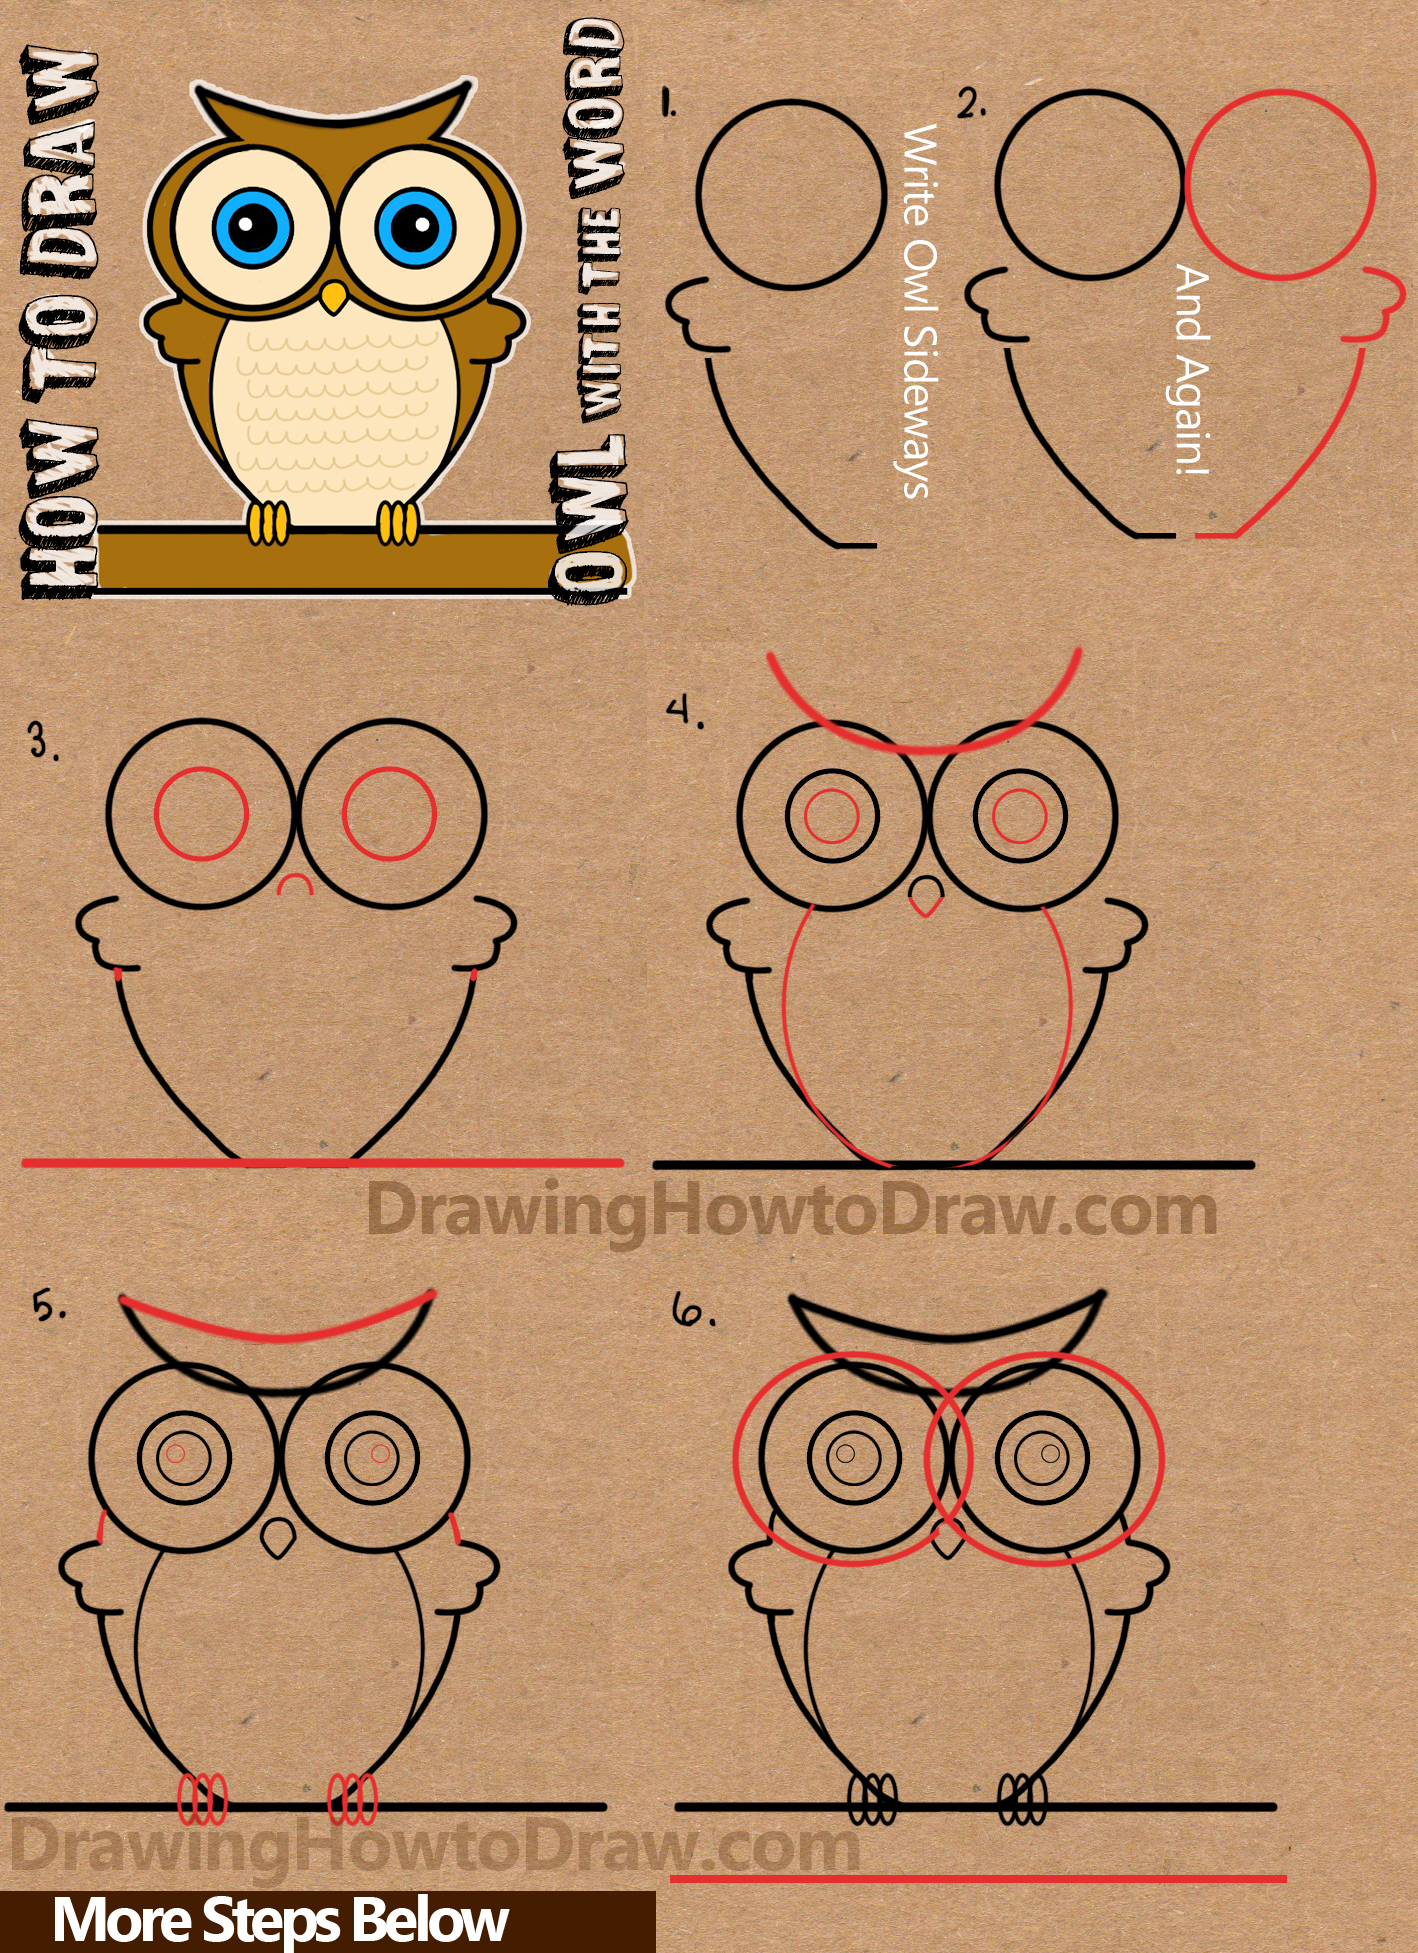 Drawing Lines With Word : How to draw a cartoon owl from word drawing tutorial